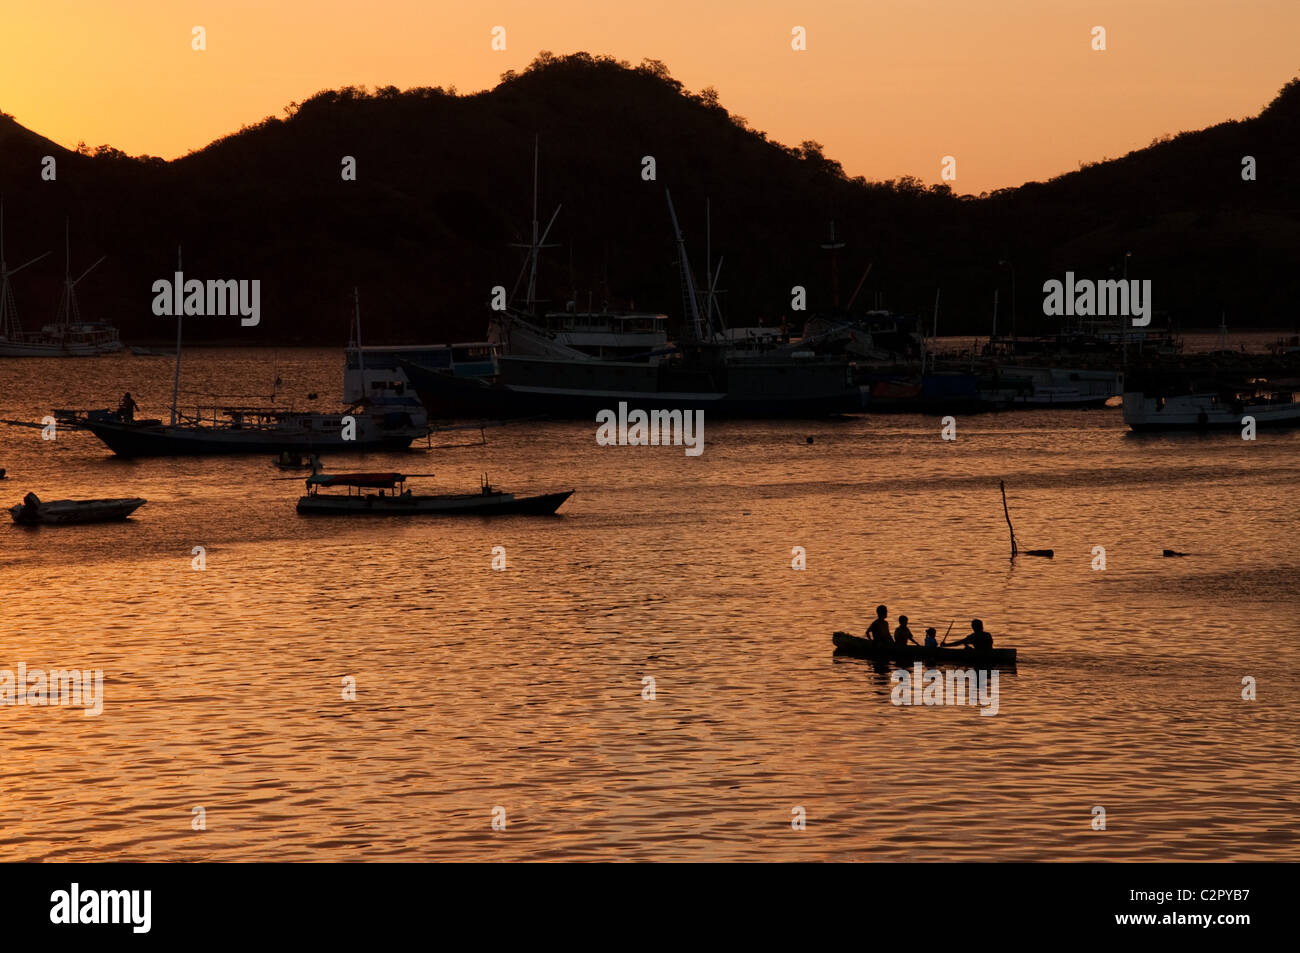 Sunset over Labuan Bajo, Flores, Indonesia - Stock Image